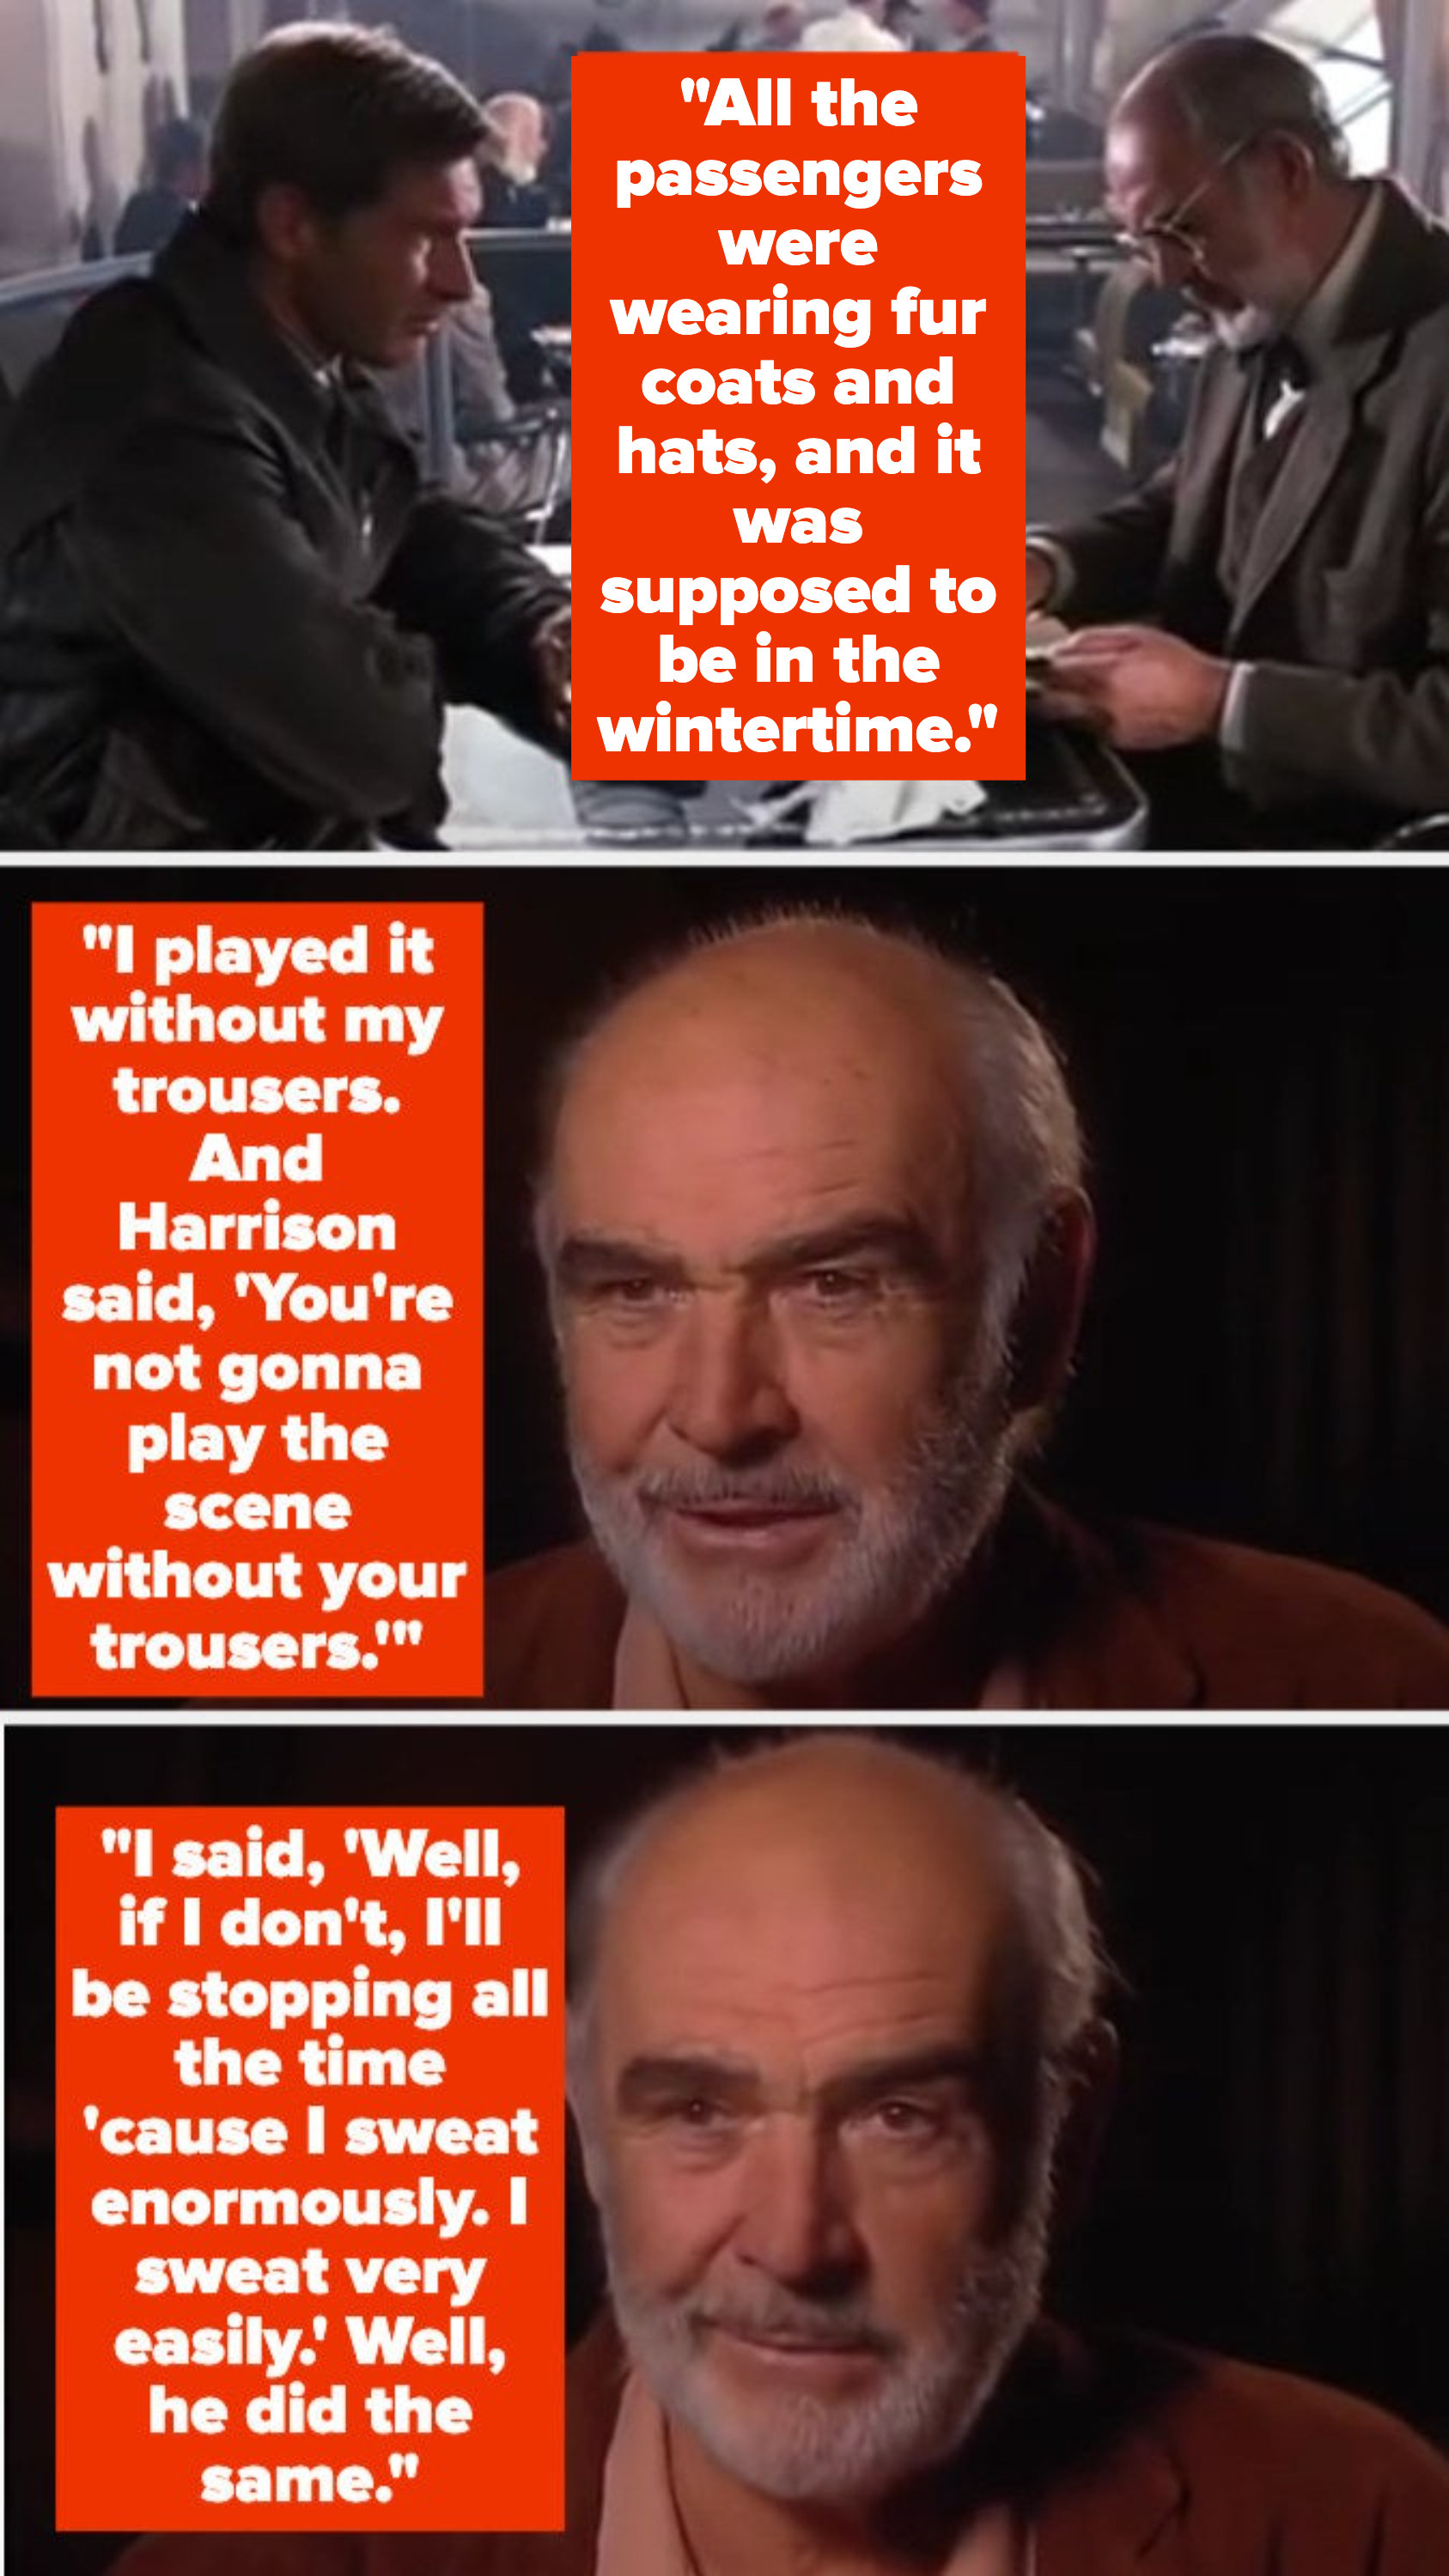 Sean Connery talking about having his pants off in a hot scene and Harrison Ford being surprised, but then taking his pants off too